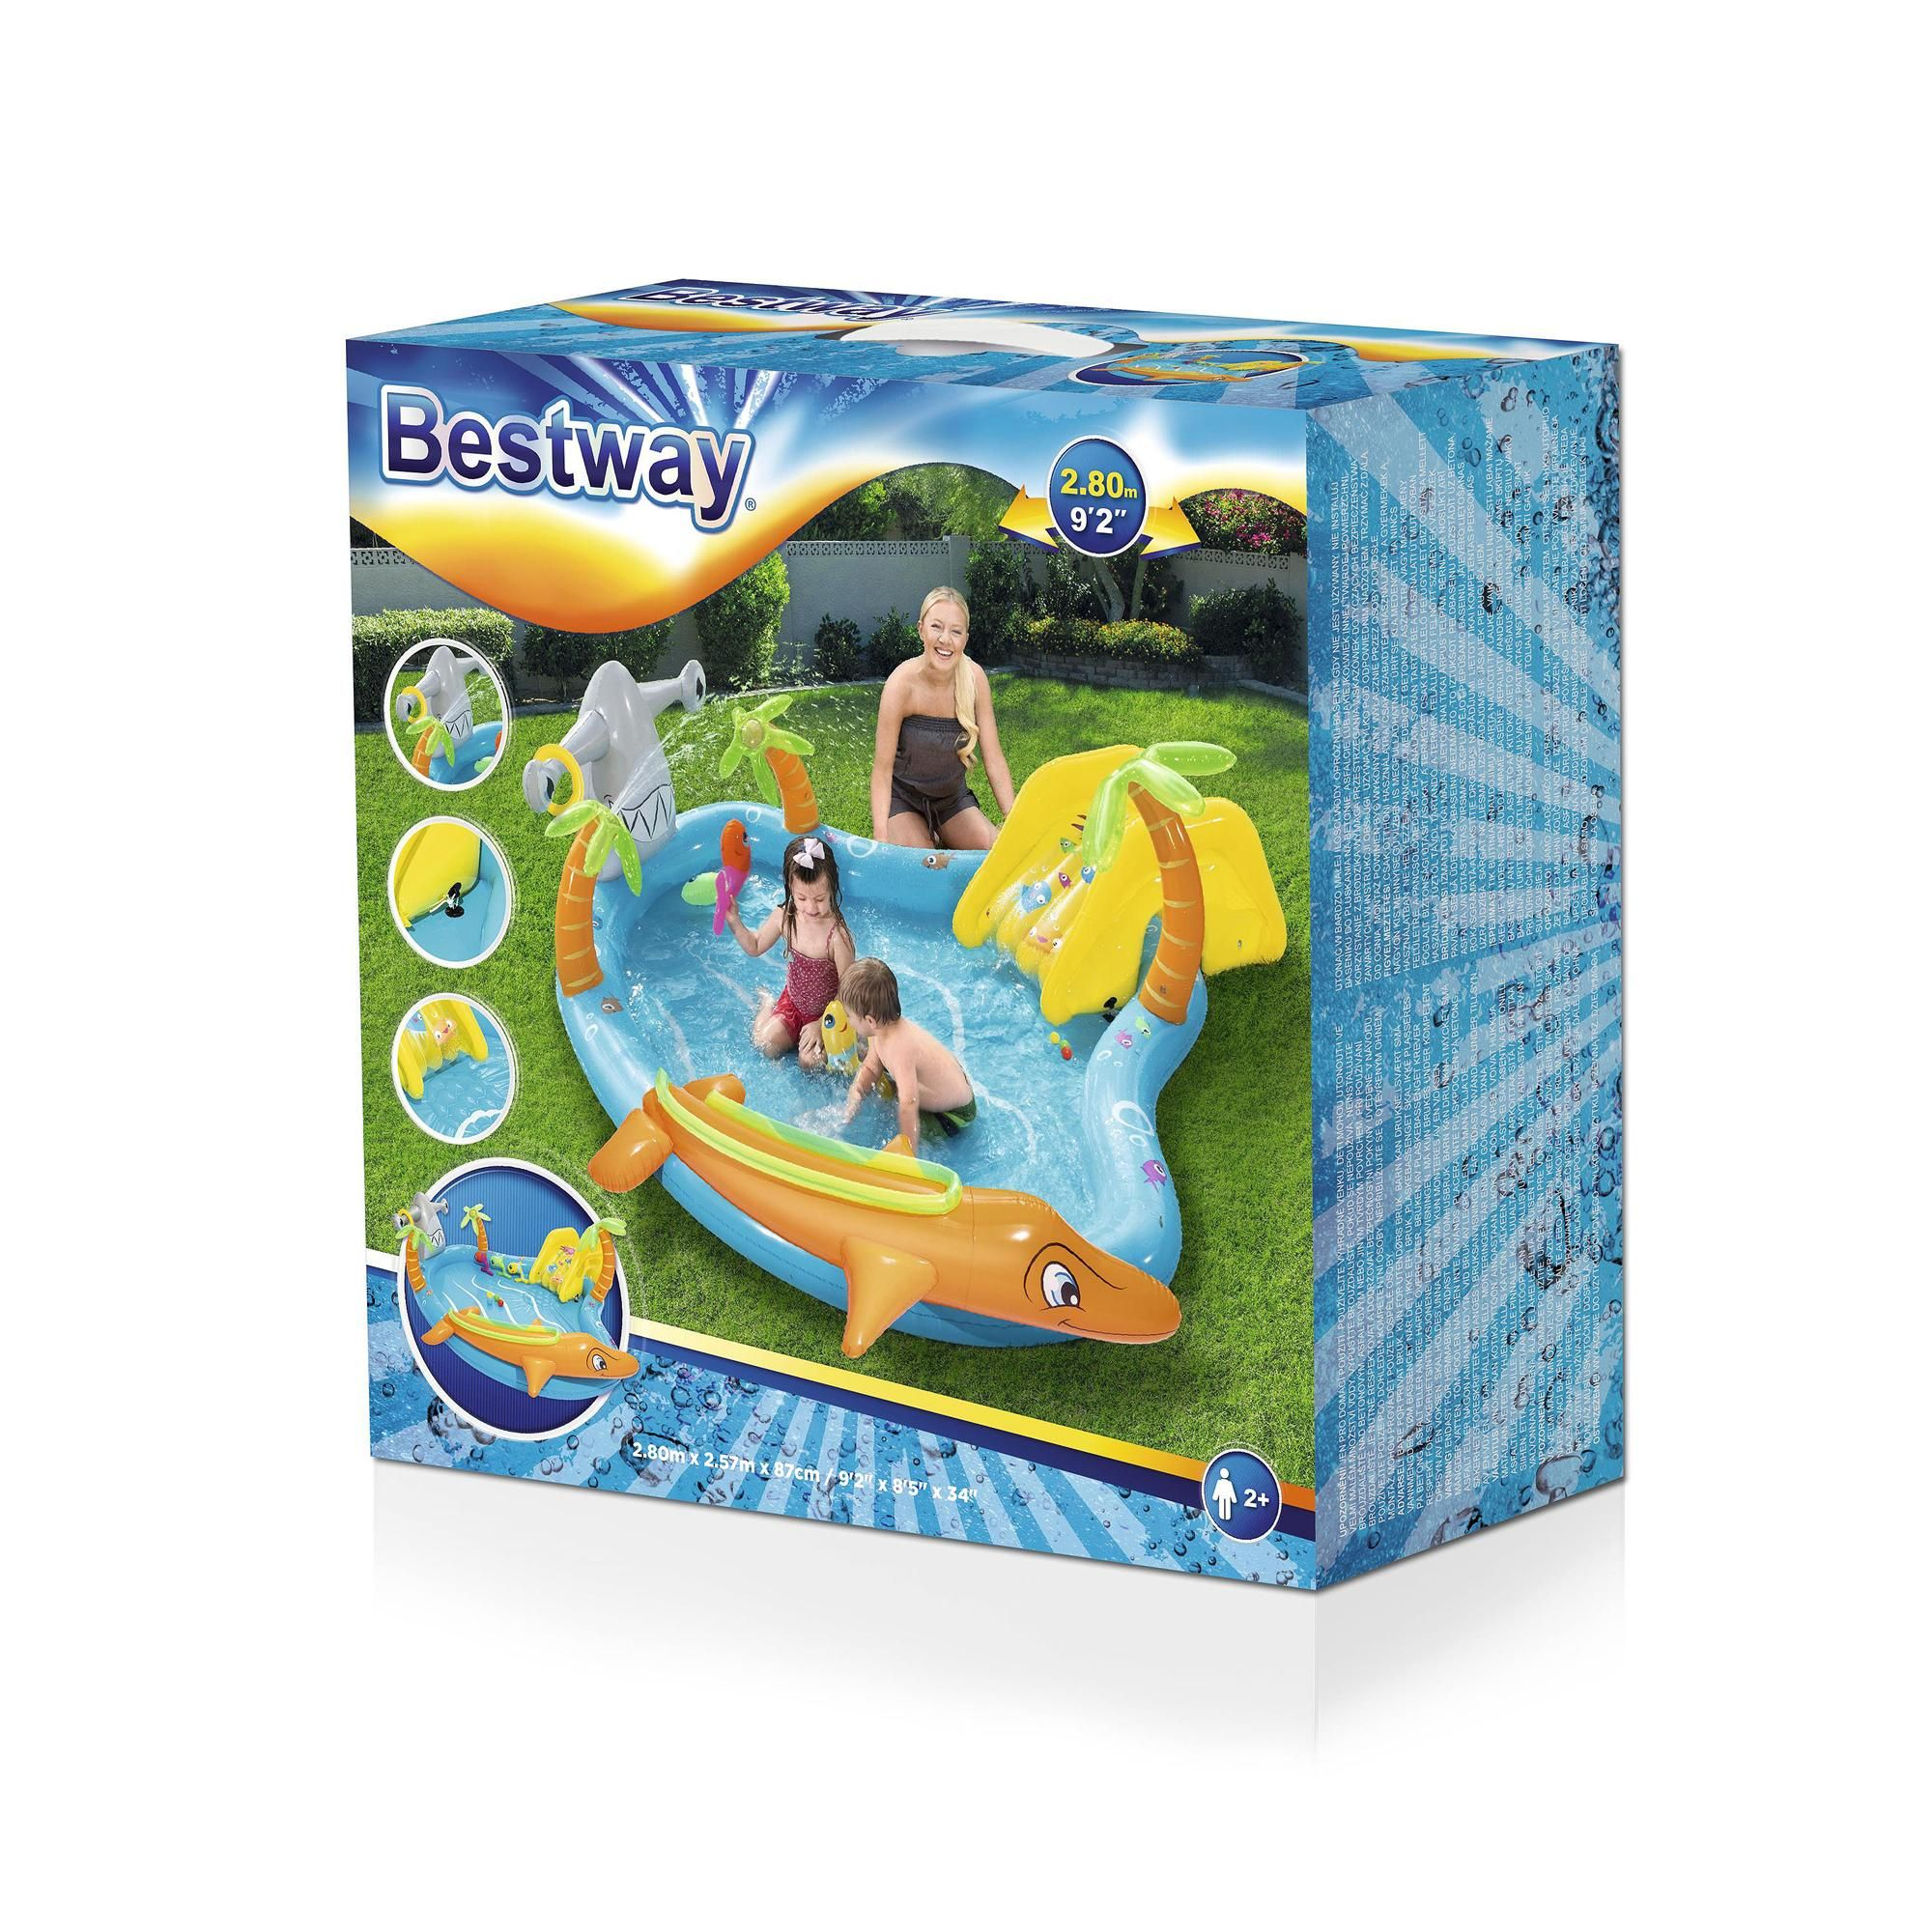 Bestway Inflatable Sea Life Play Centre